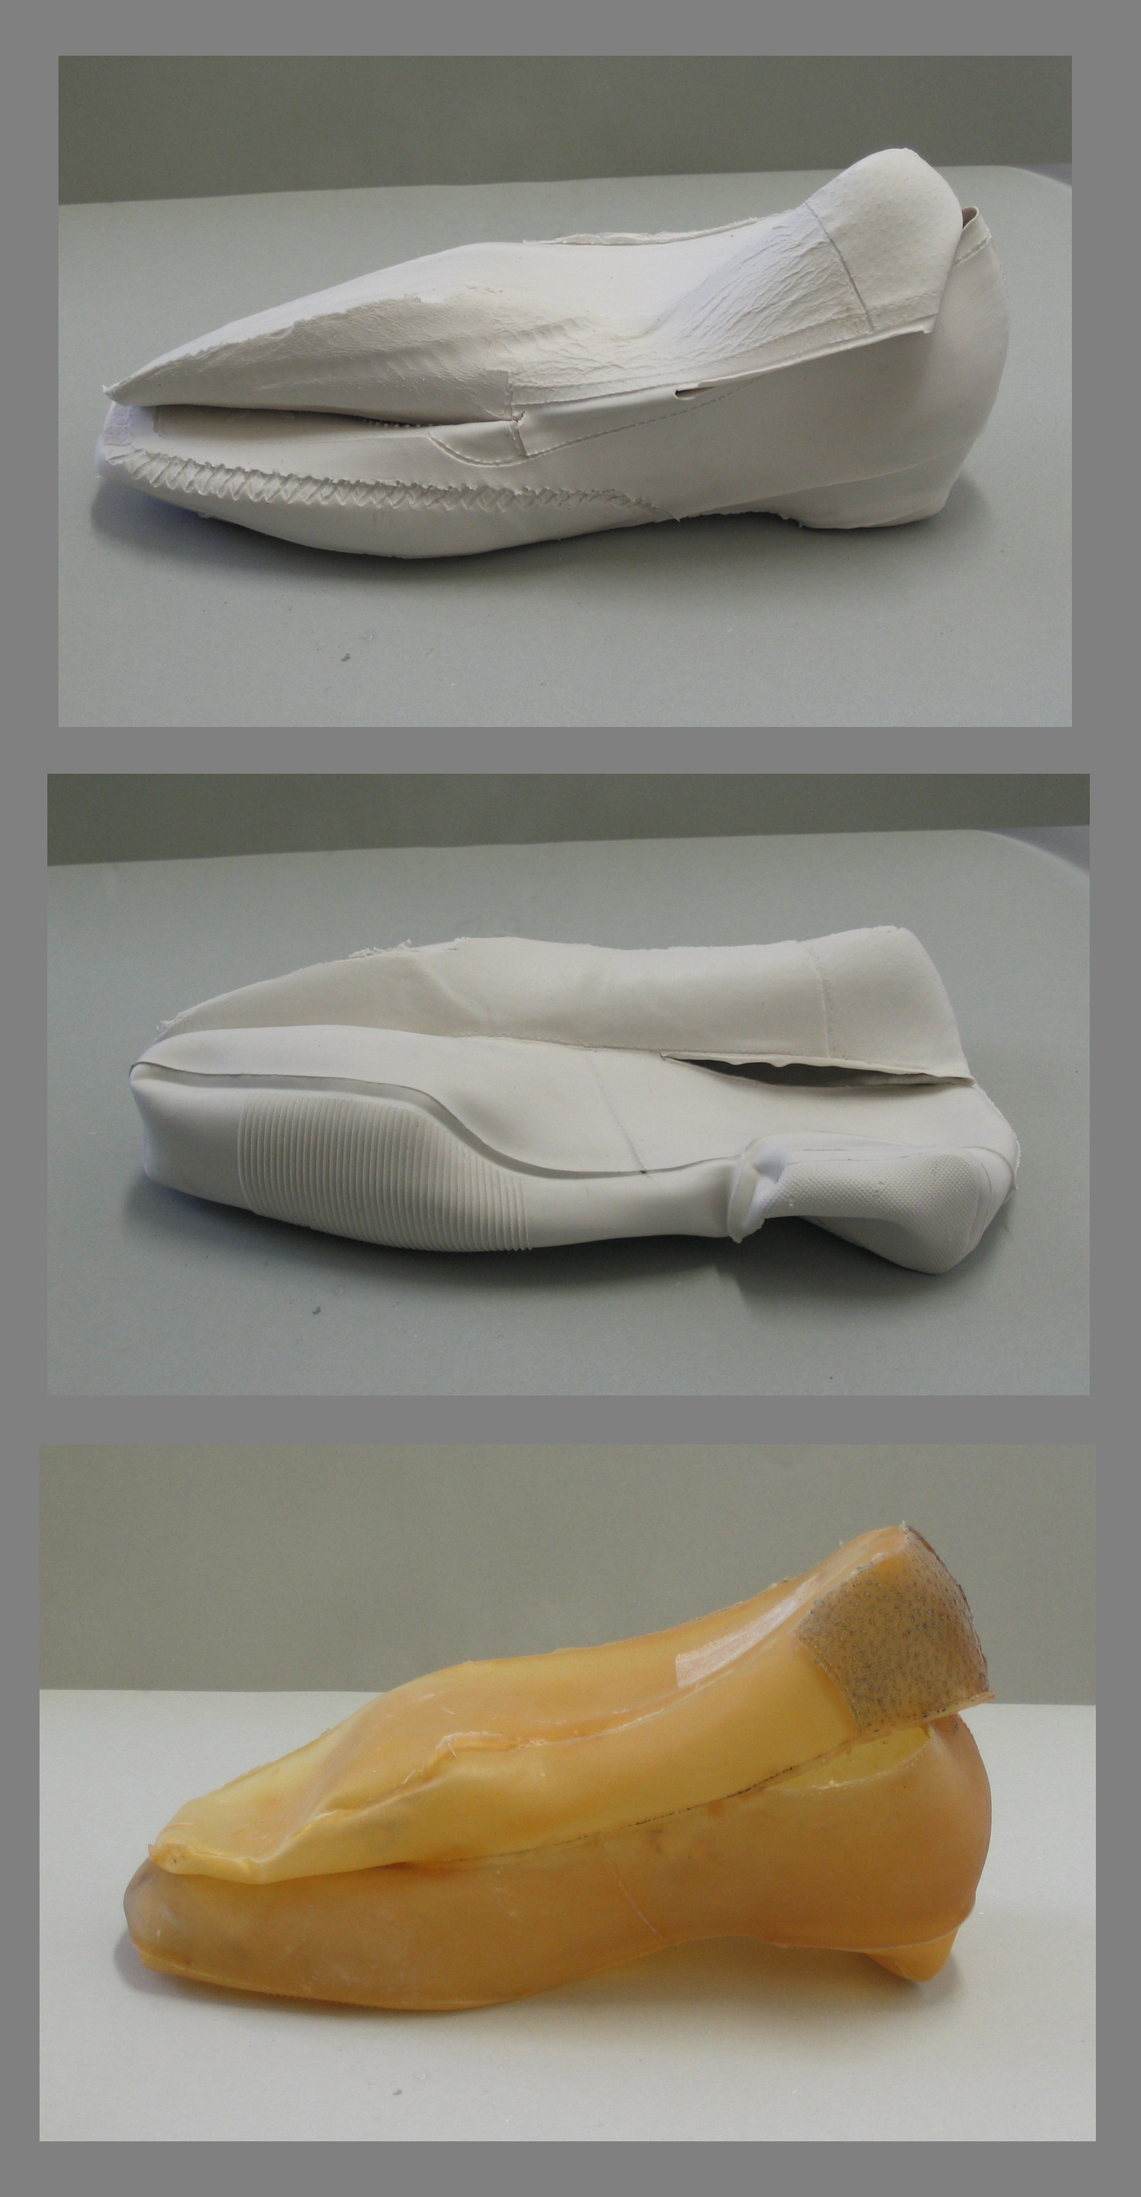 05 Inside and Outside of Shoes, 2008, silicone rubber and latex, various sizes